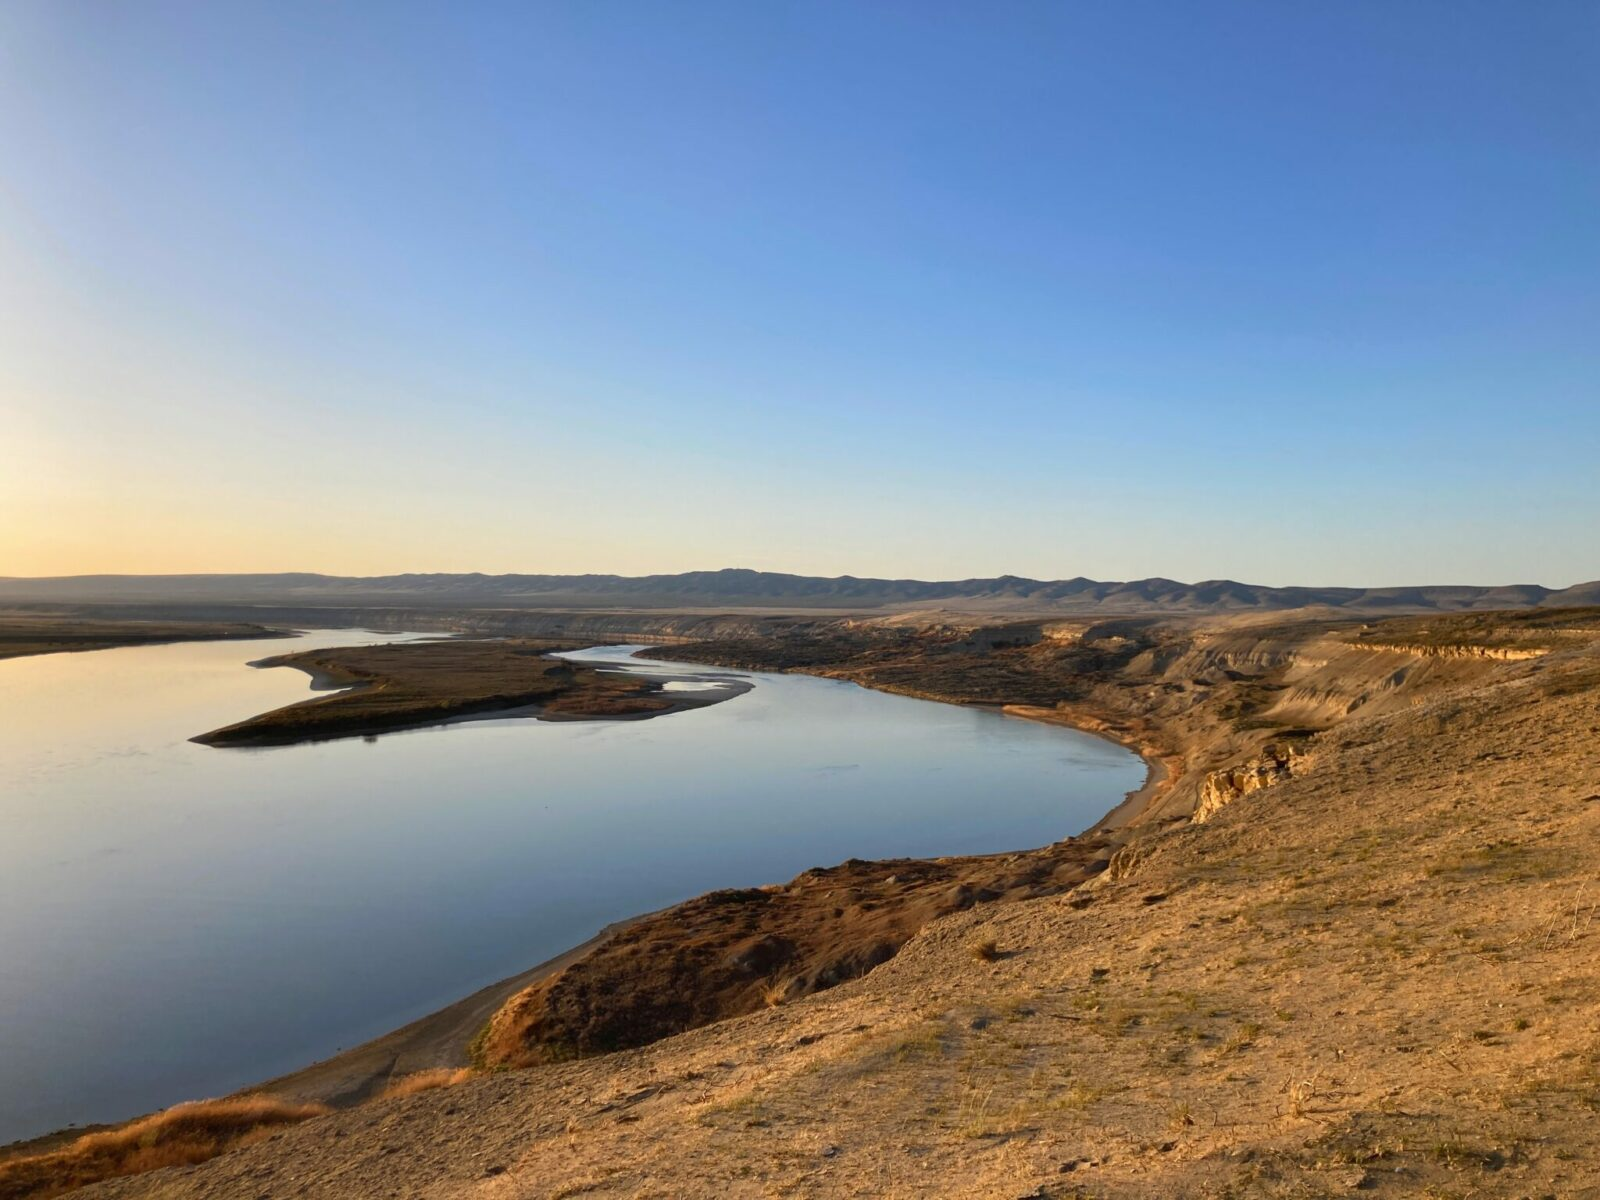 Hanford Reach is a section of the Columbia River in Eastern Washington. The river and an island in it are seen from the bluffs above, surrounded by bluffs and distant mountains at sunset on a sunny day